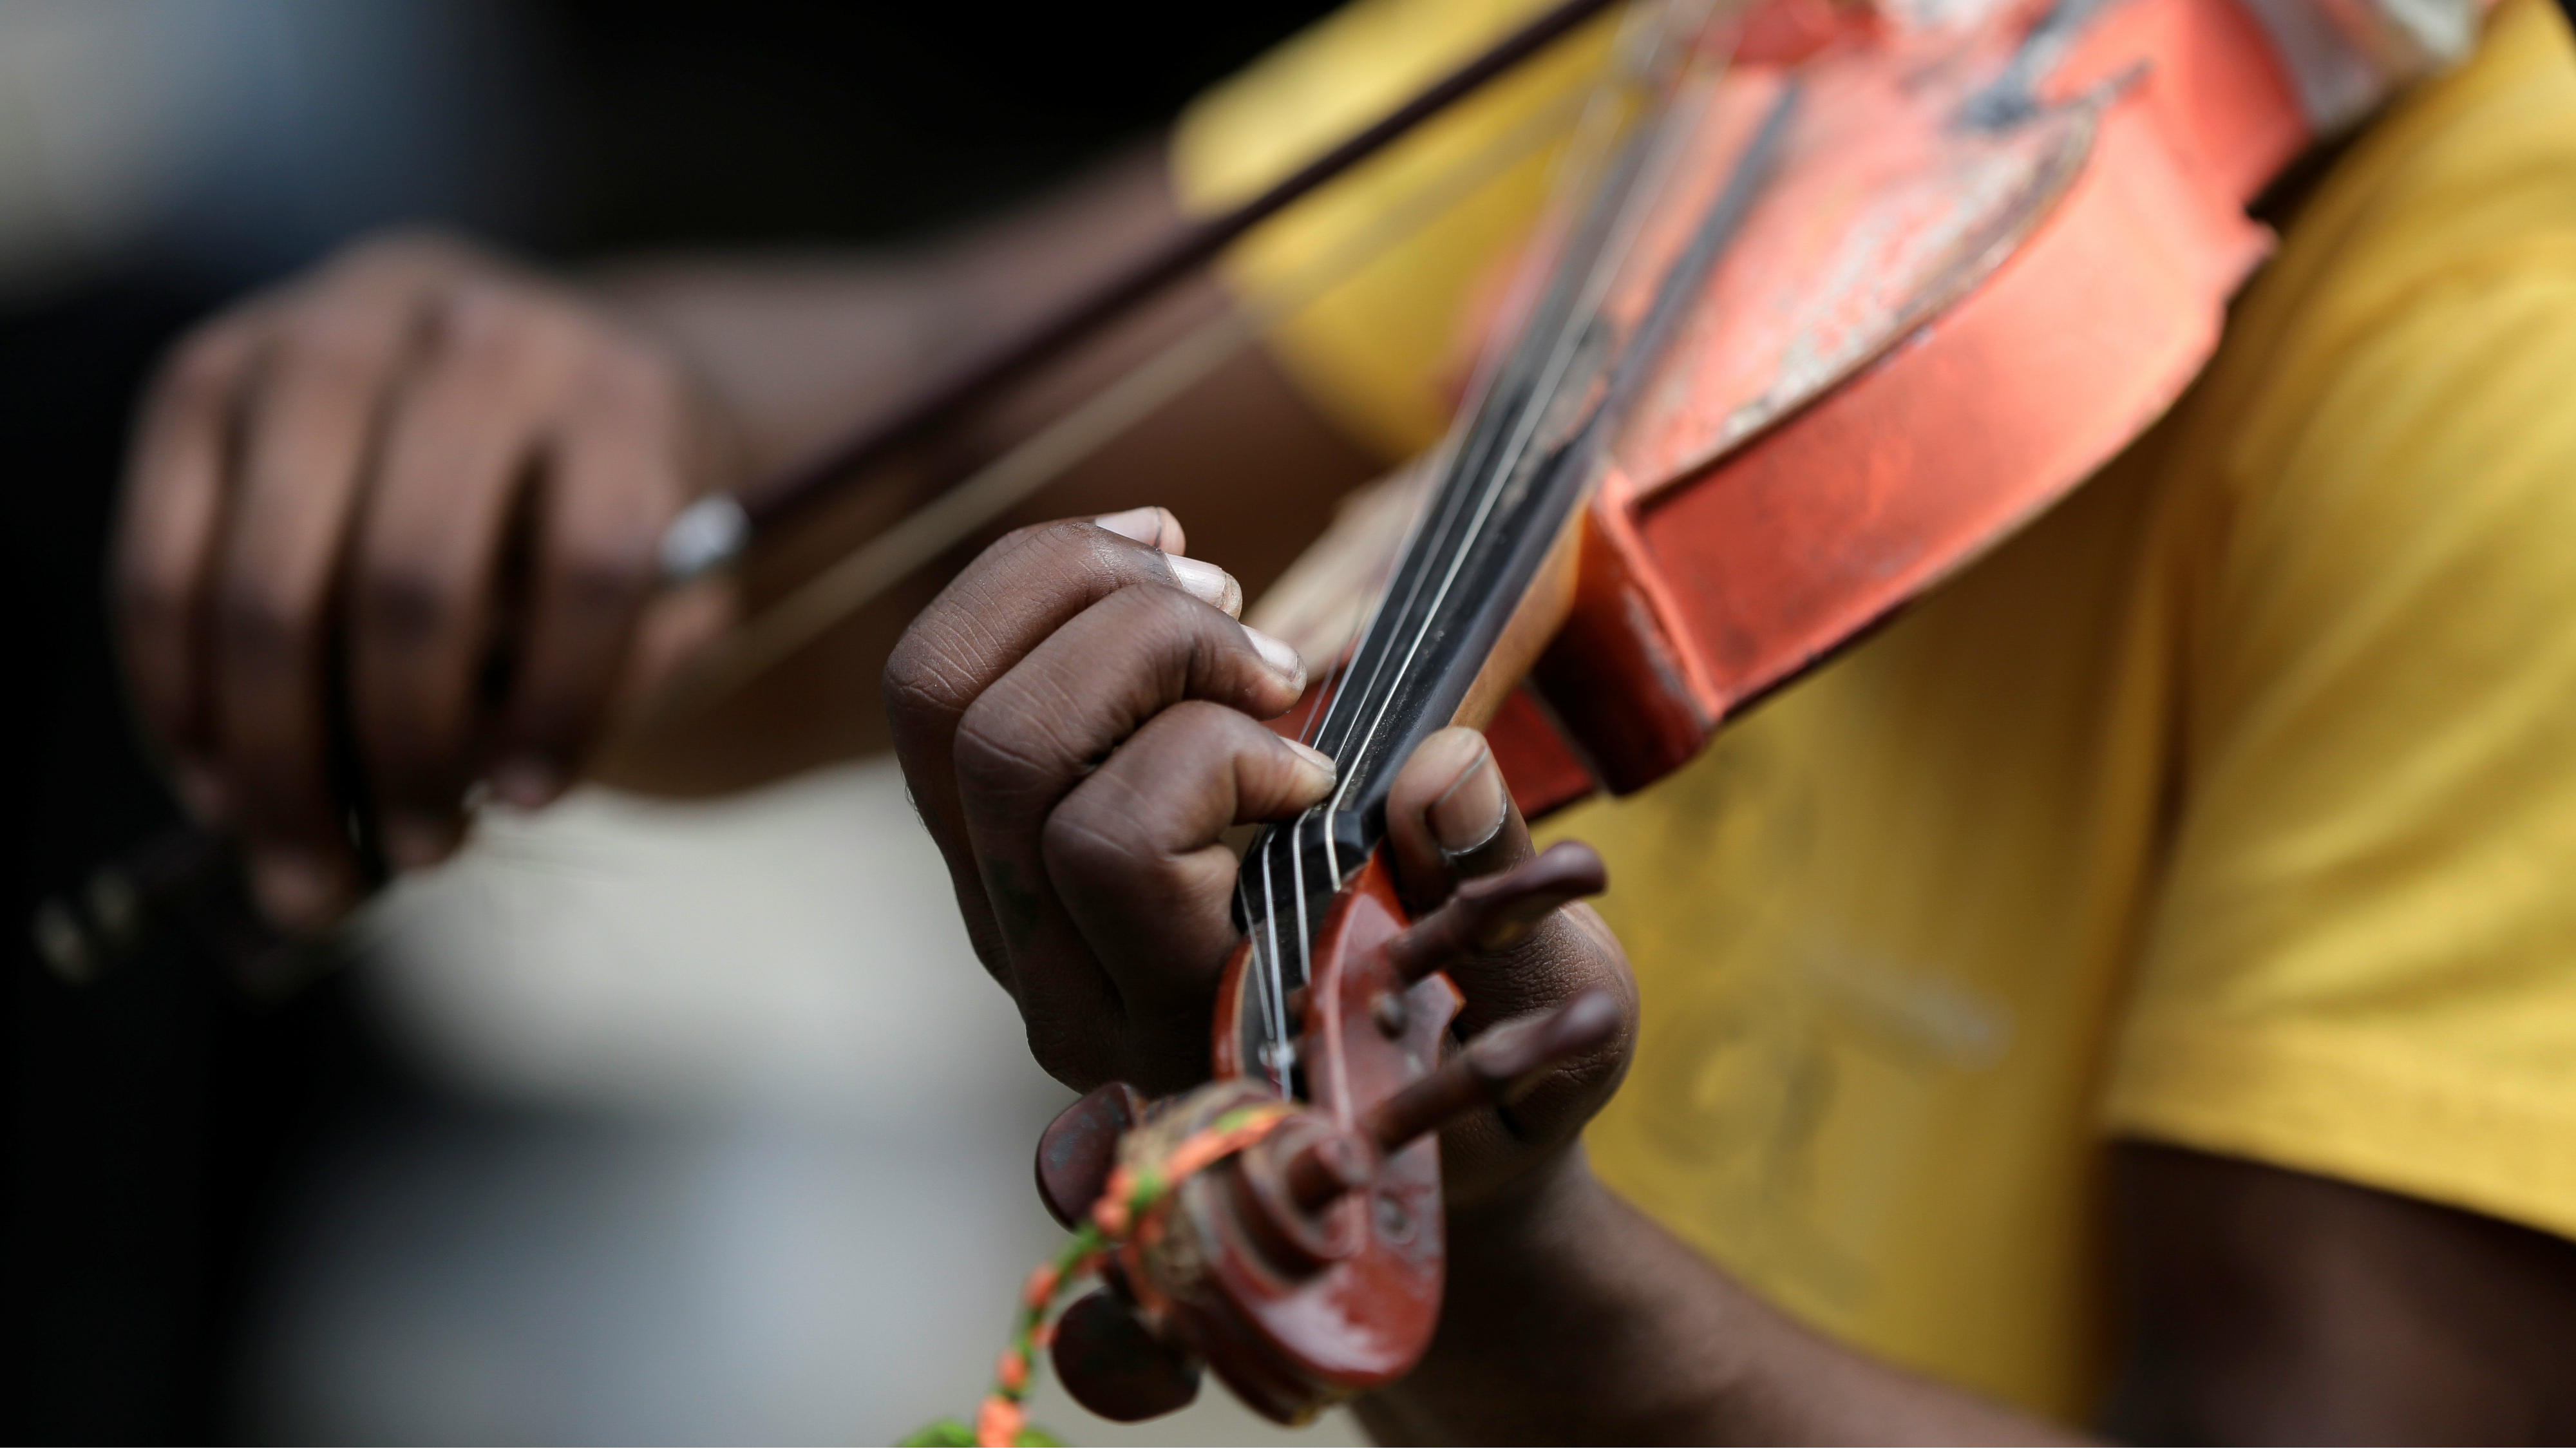 A person playing the violin.